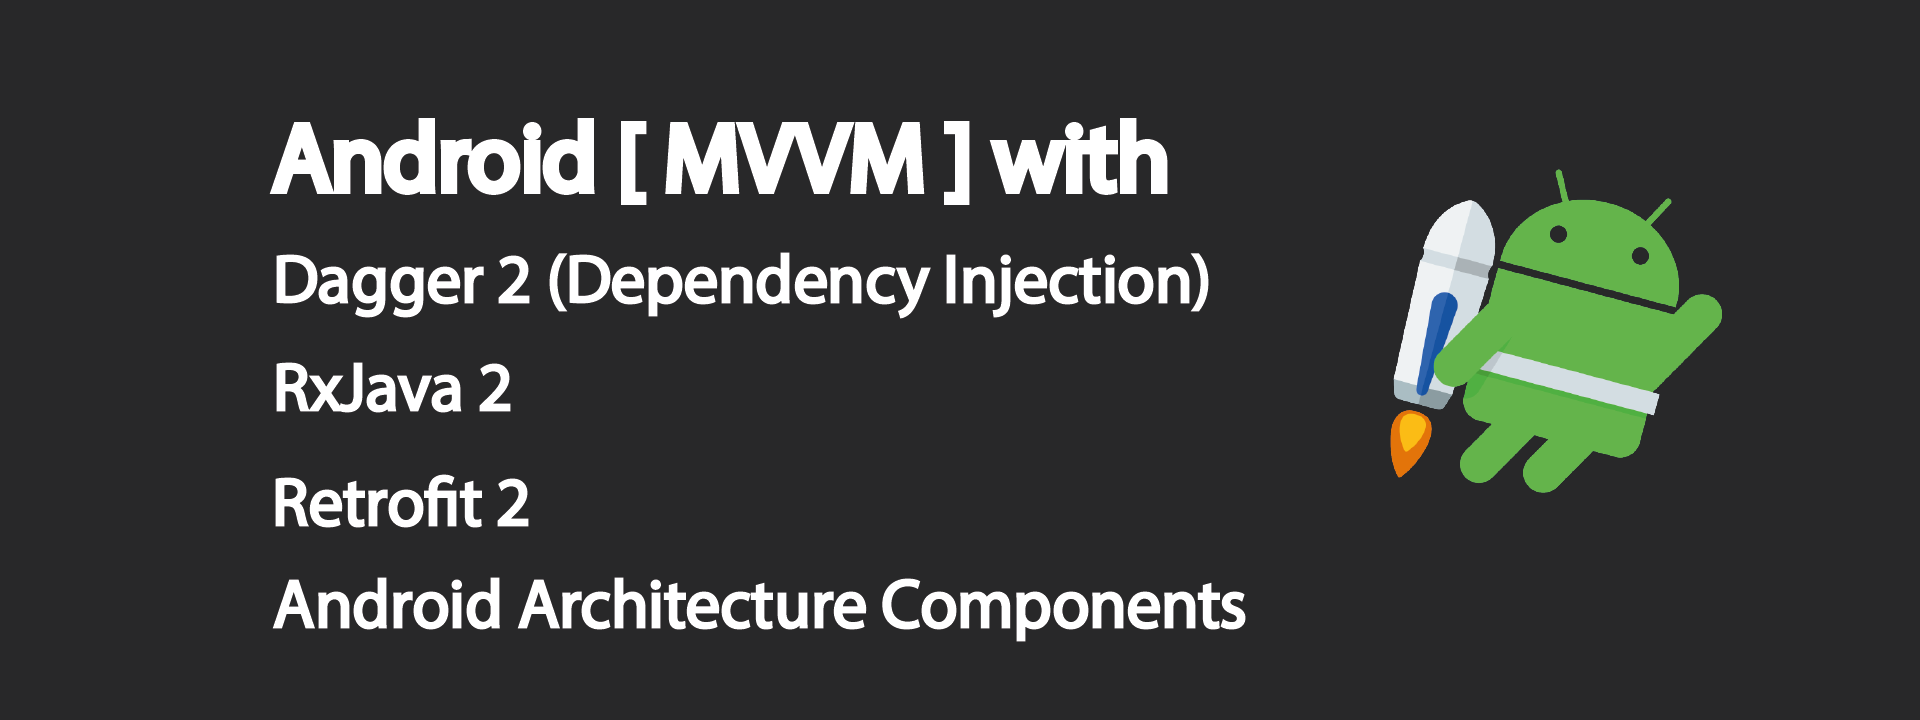 Android MVVM with Dagger 2, Retrofit, RxJava, Architecture